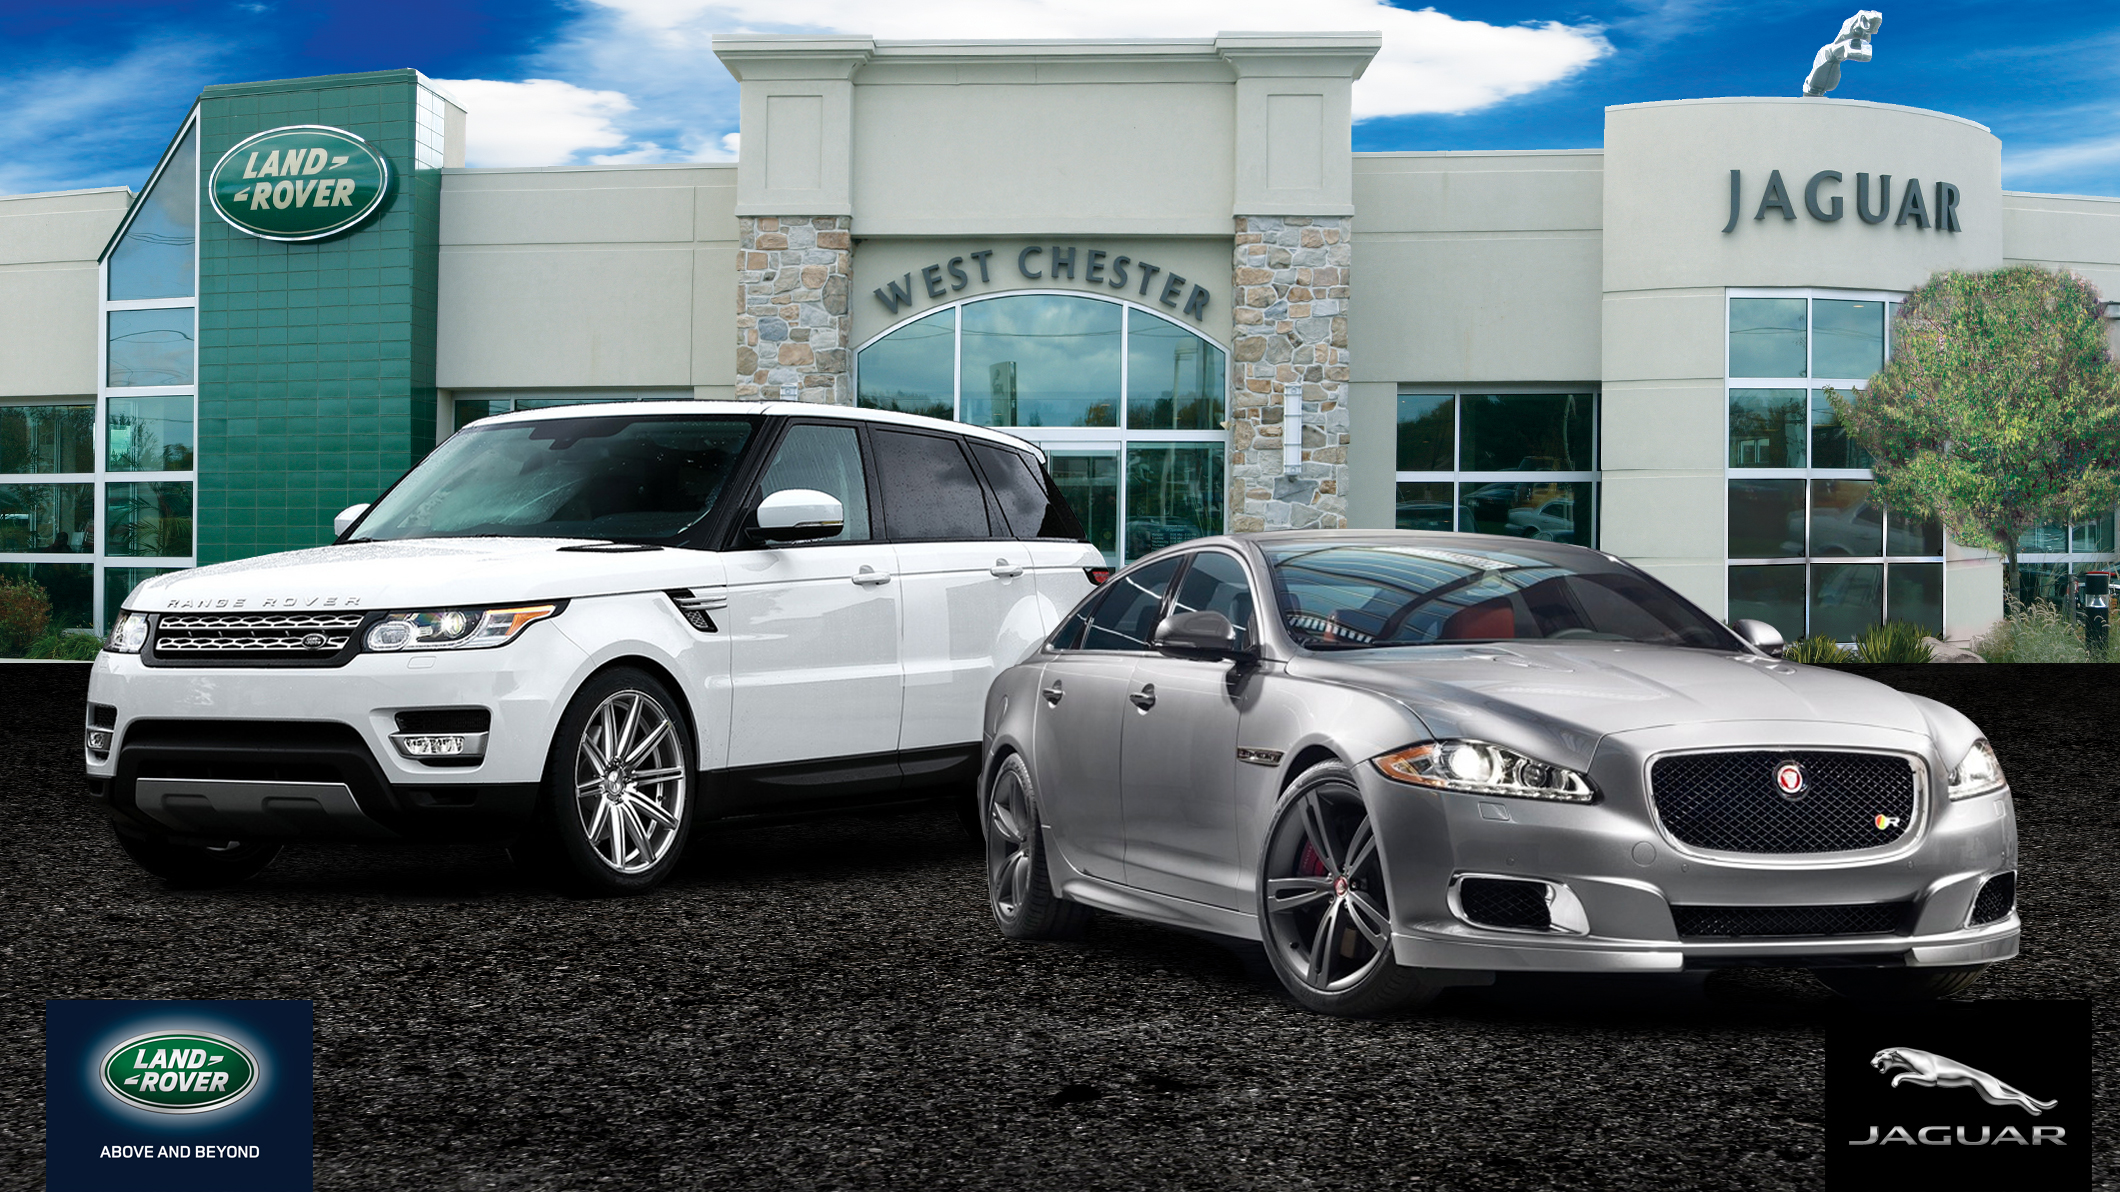 Why Choose Jaguar Land Rover of West Chester